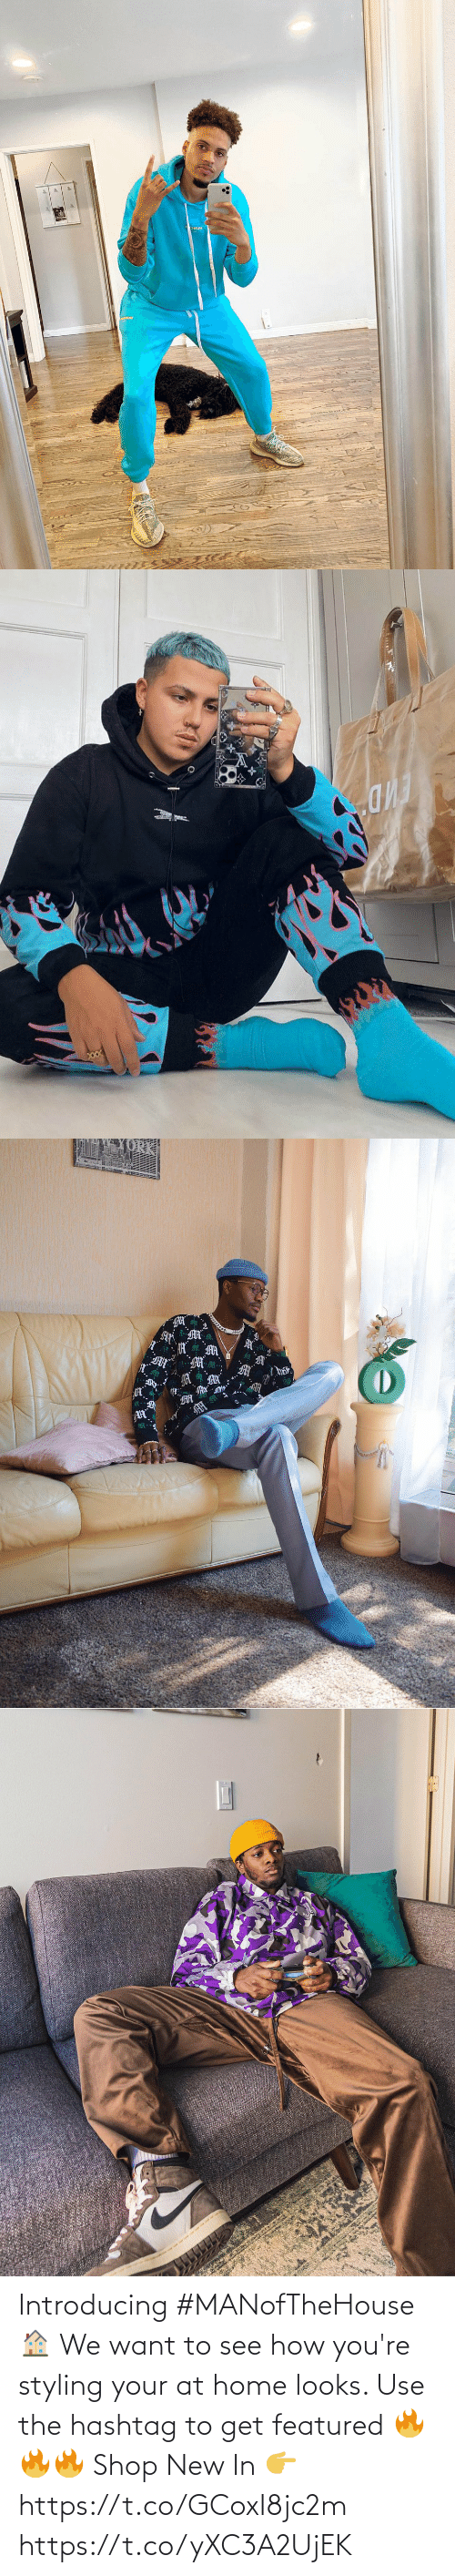 Featured: Introducing #MANofTheHouse 🏠  We want to see how you're styling your at home looks. Use the hashtag to get featured 🔥🔥🔥  Shop New In 👉 https://t.co/GCoxI8jc2m https://t.co/yXC3A2UjEK